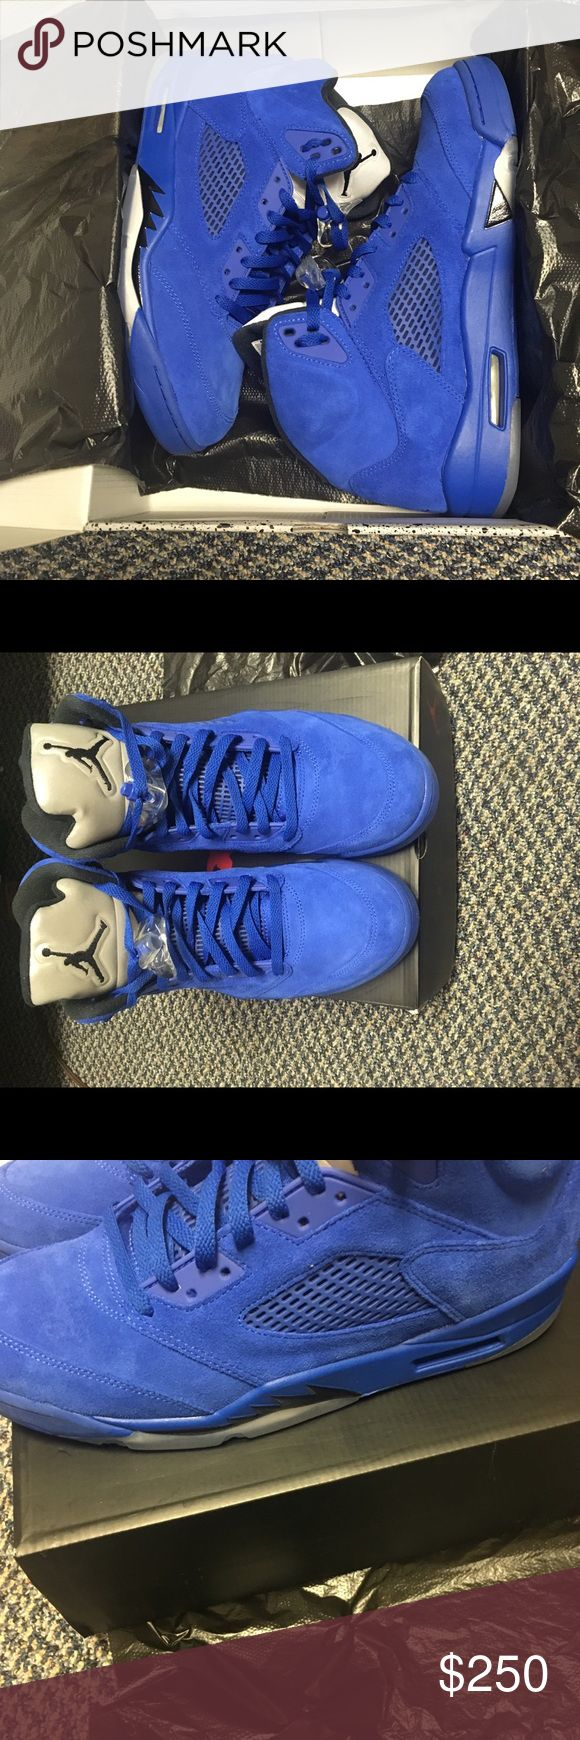 Retro Jordan 5s Blue retro Jordan's 5 size 11.5 willing to negotiate price text 313-636-4356 for more questions & picture Jordan Shoes Sneakers